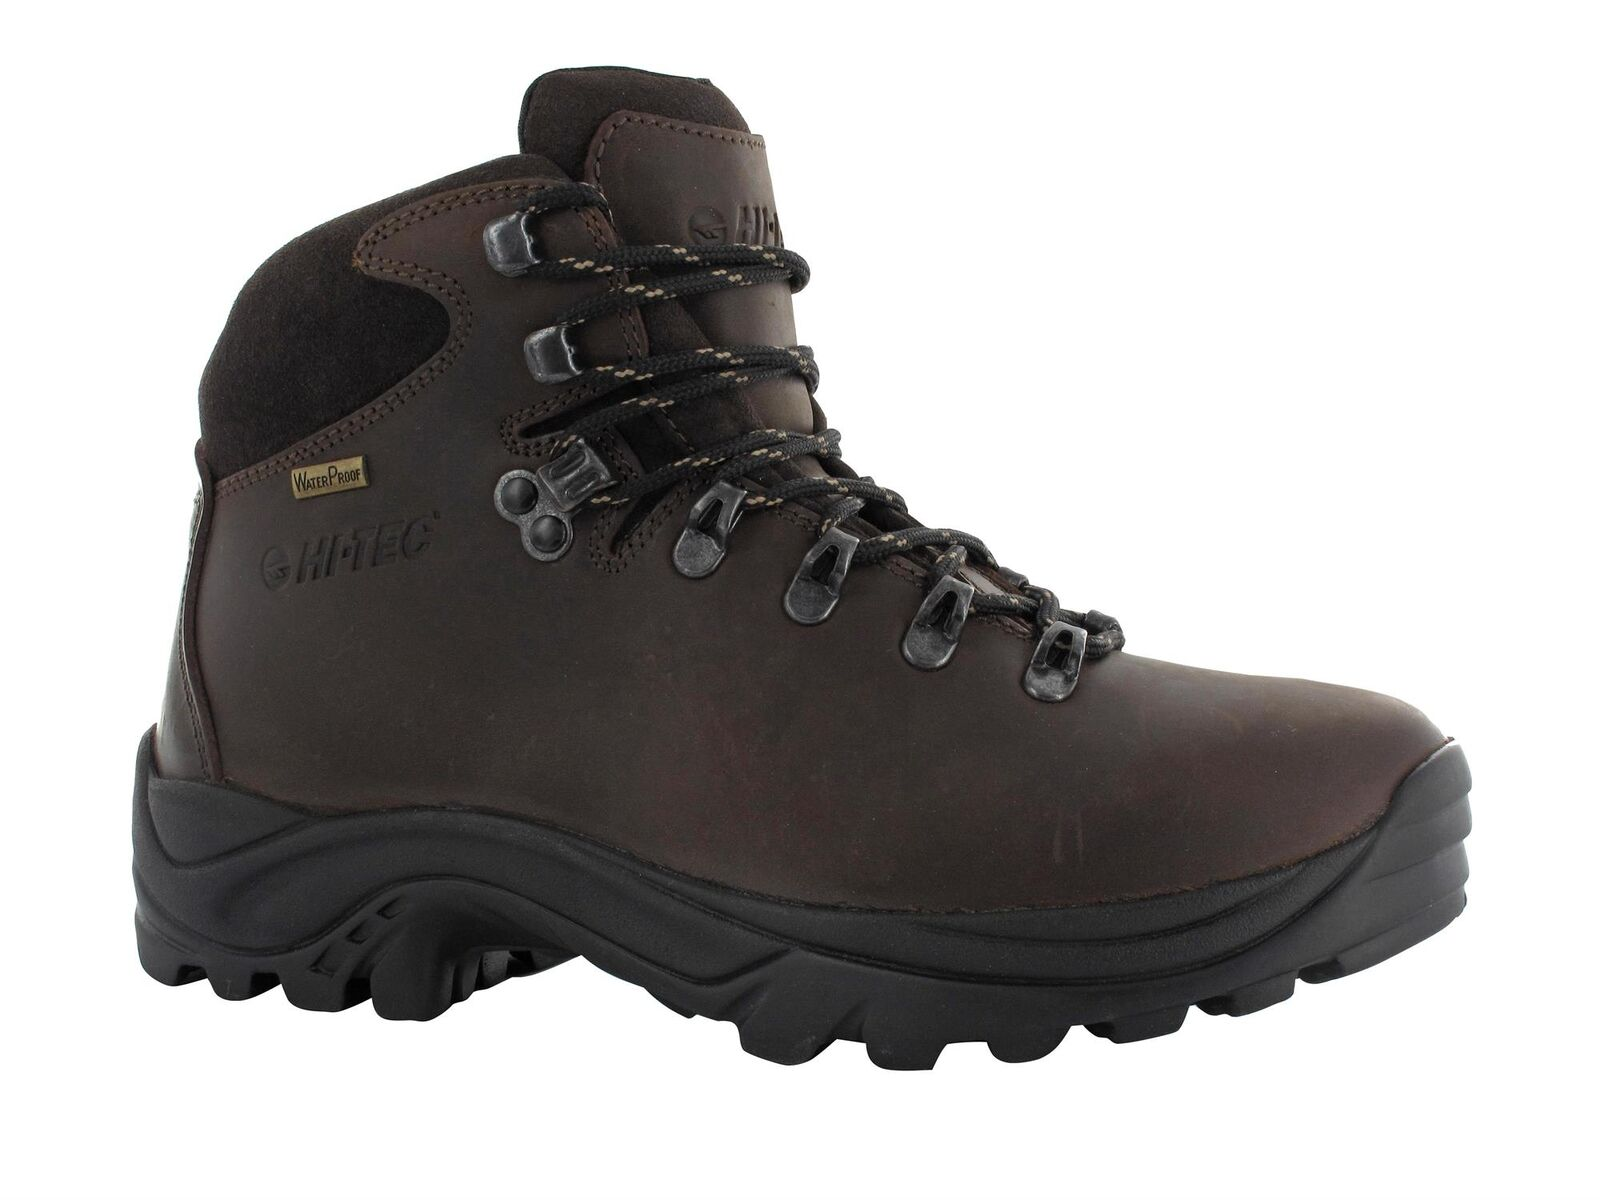 HiTec Ravine - Women's Leather Comfortable Walking  Boots  shop online today